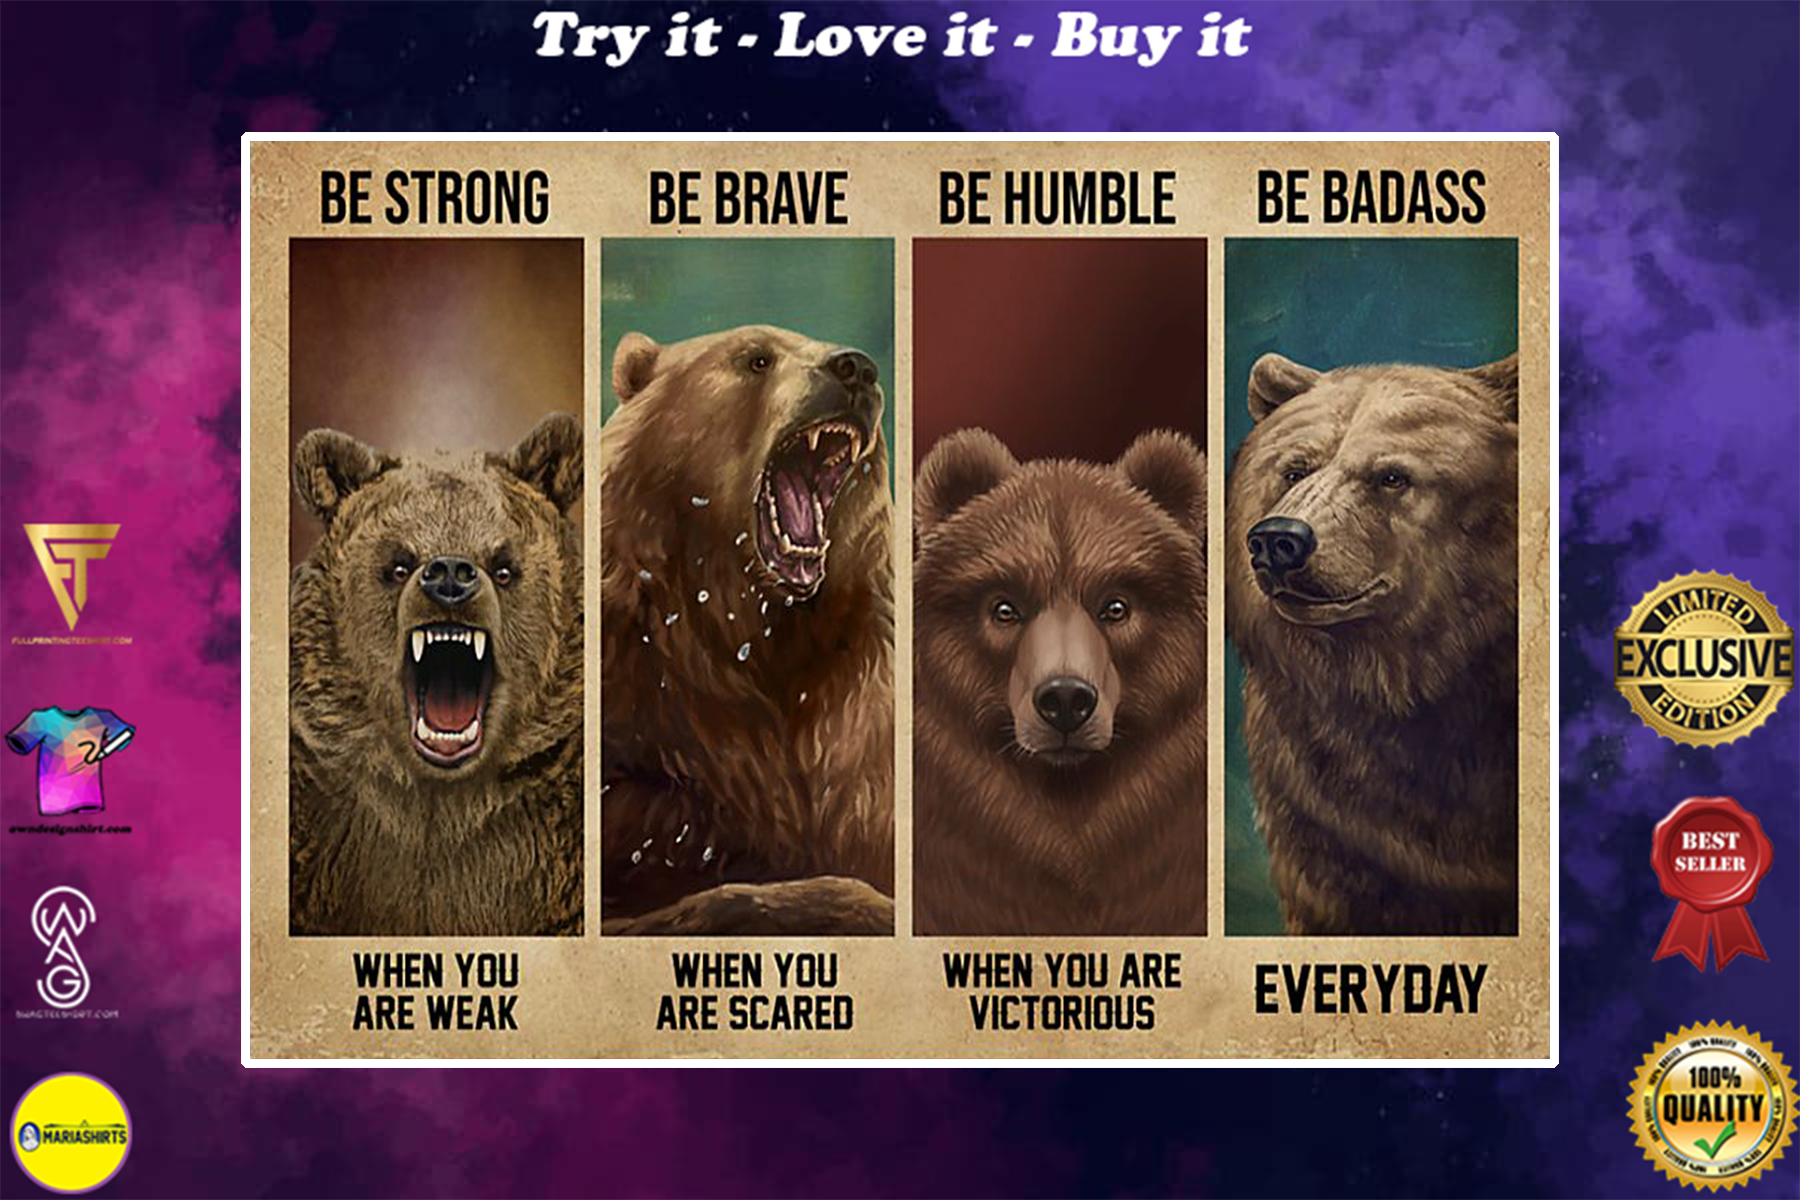 vintage bear be strong when you are weak be brave when you are scared poster